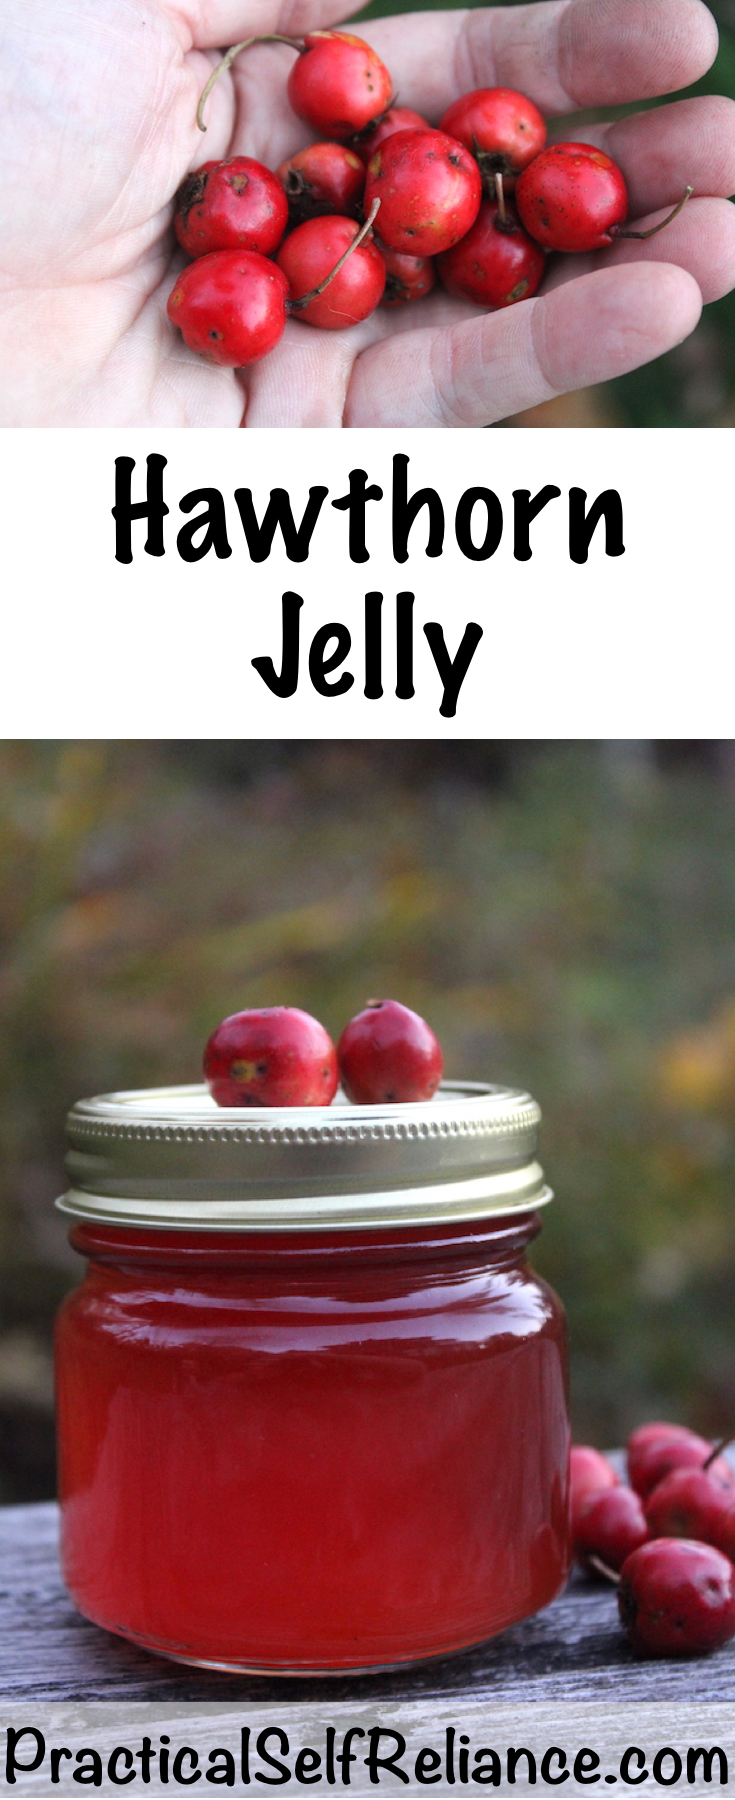 Hawthorn Jelly Recipe for Canning #hawthorn #recipes #jellyrecipes #canning #foodpreservation #homesteading